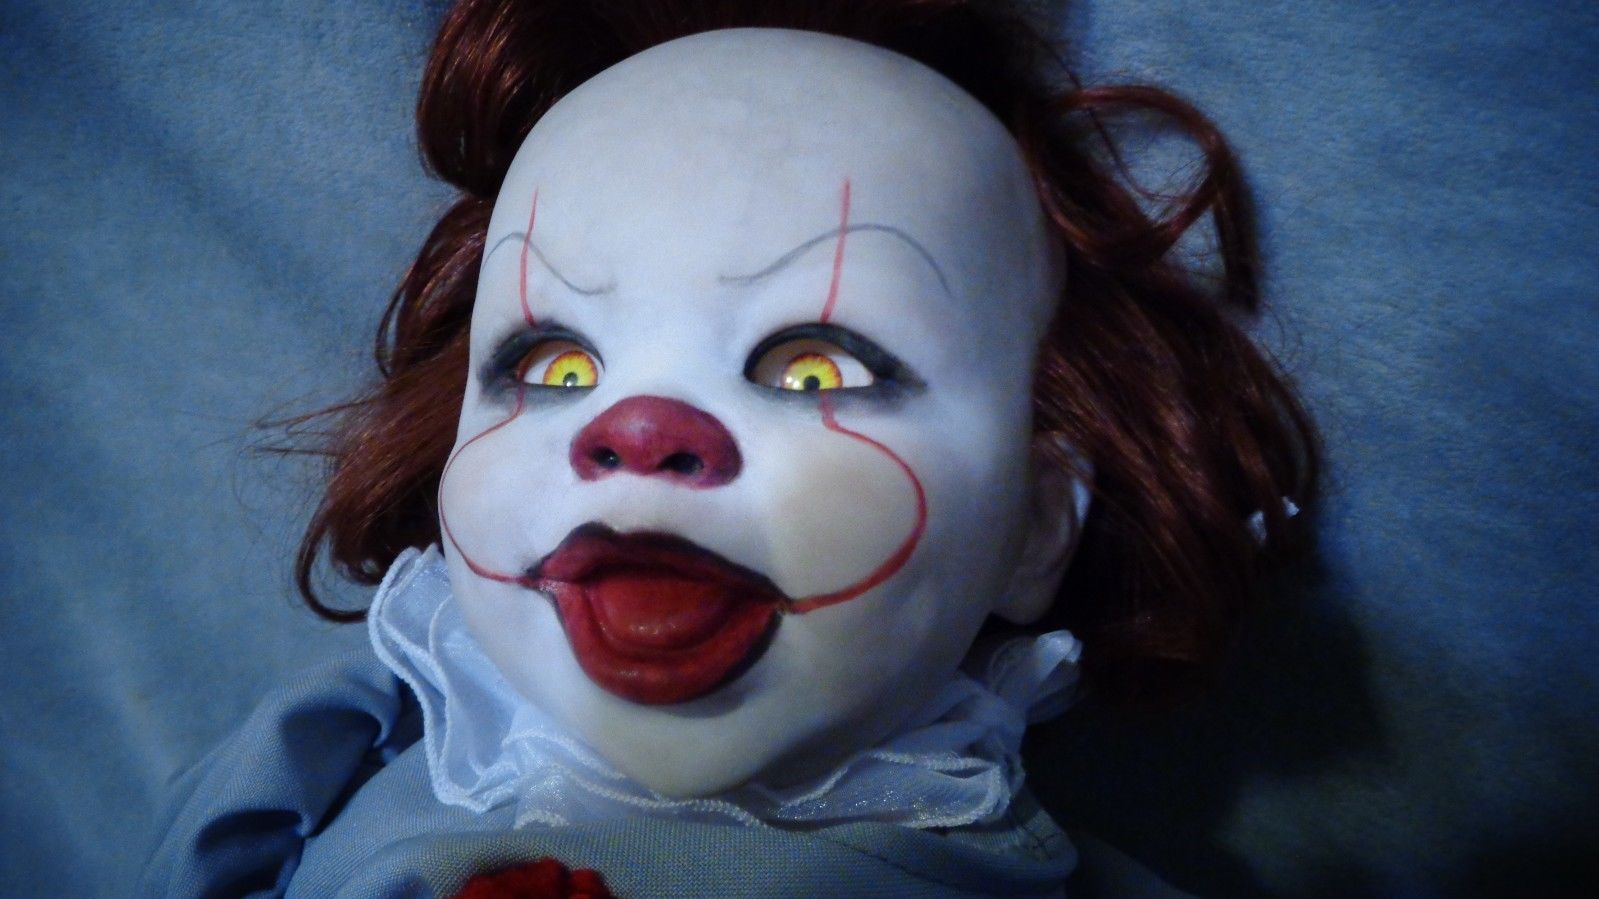 this baby pennywise doll will probably ensure you never sleep